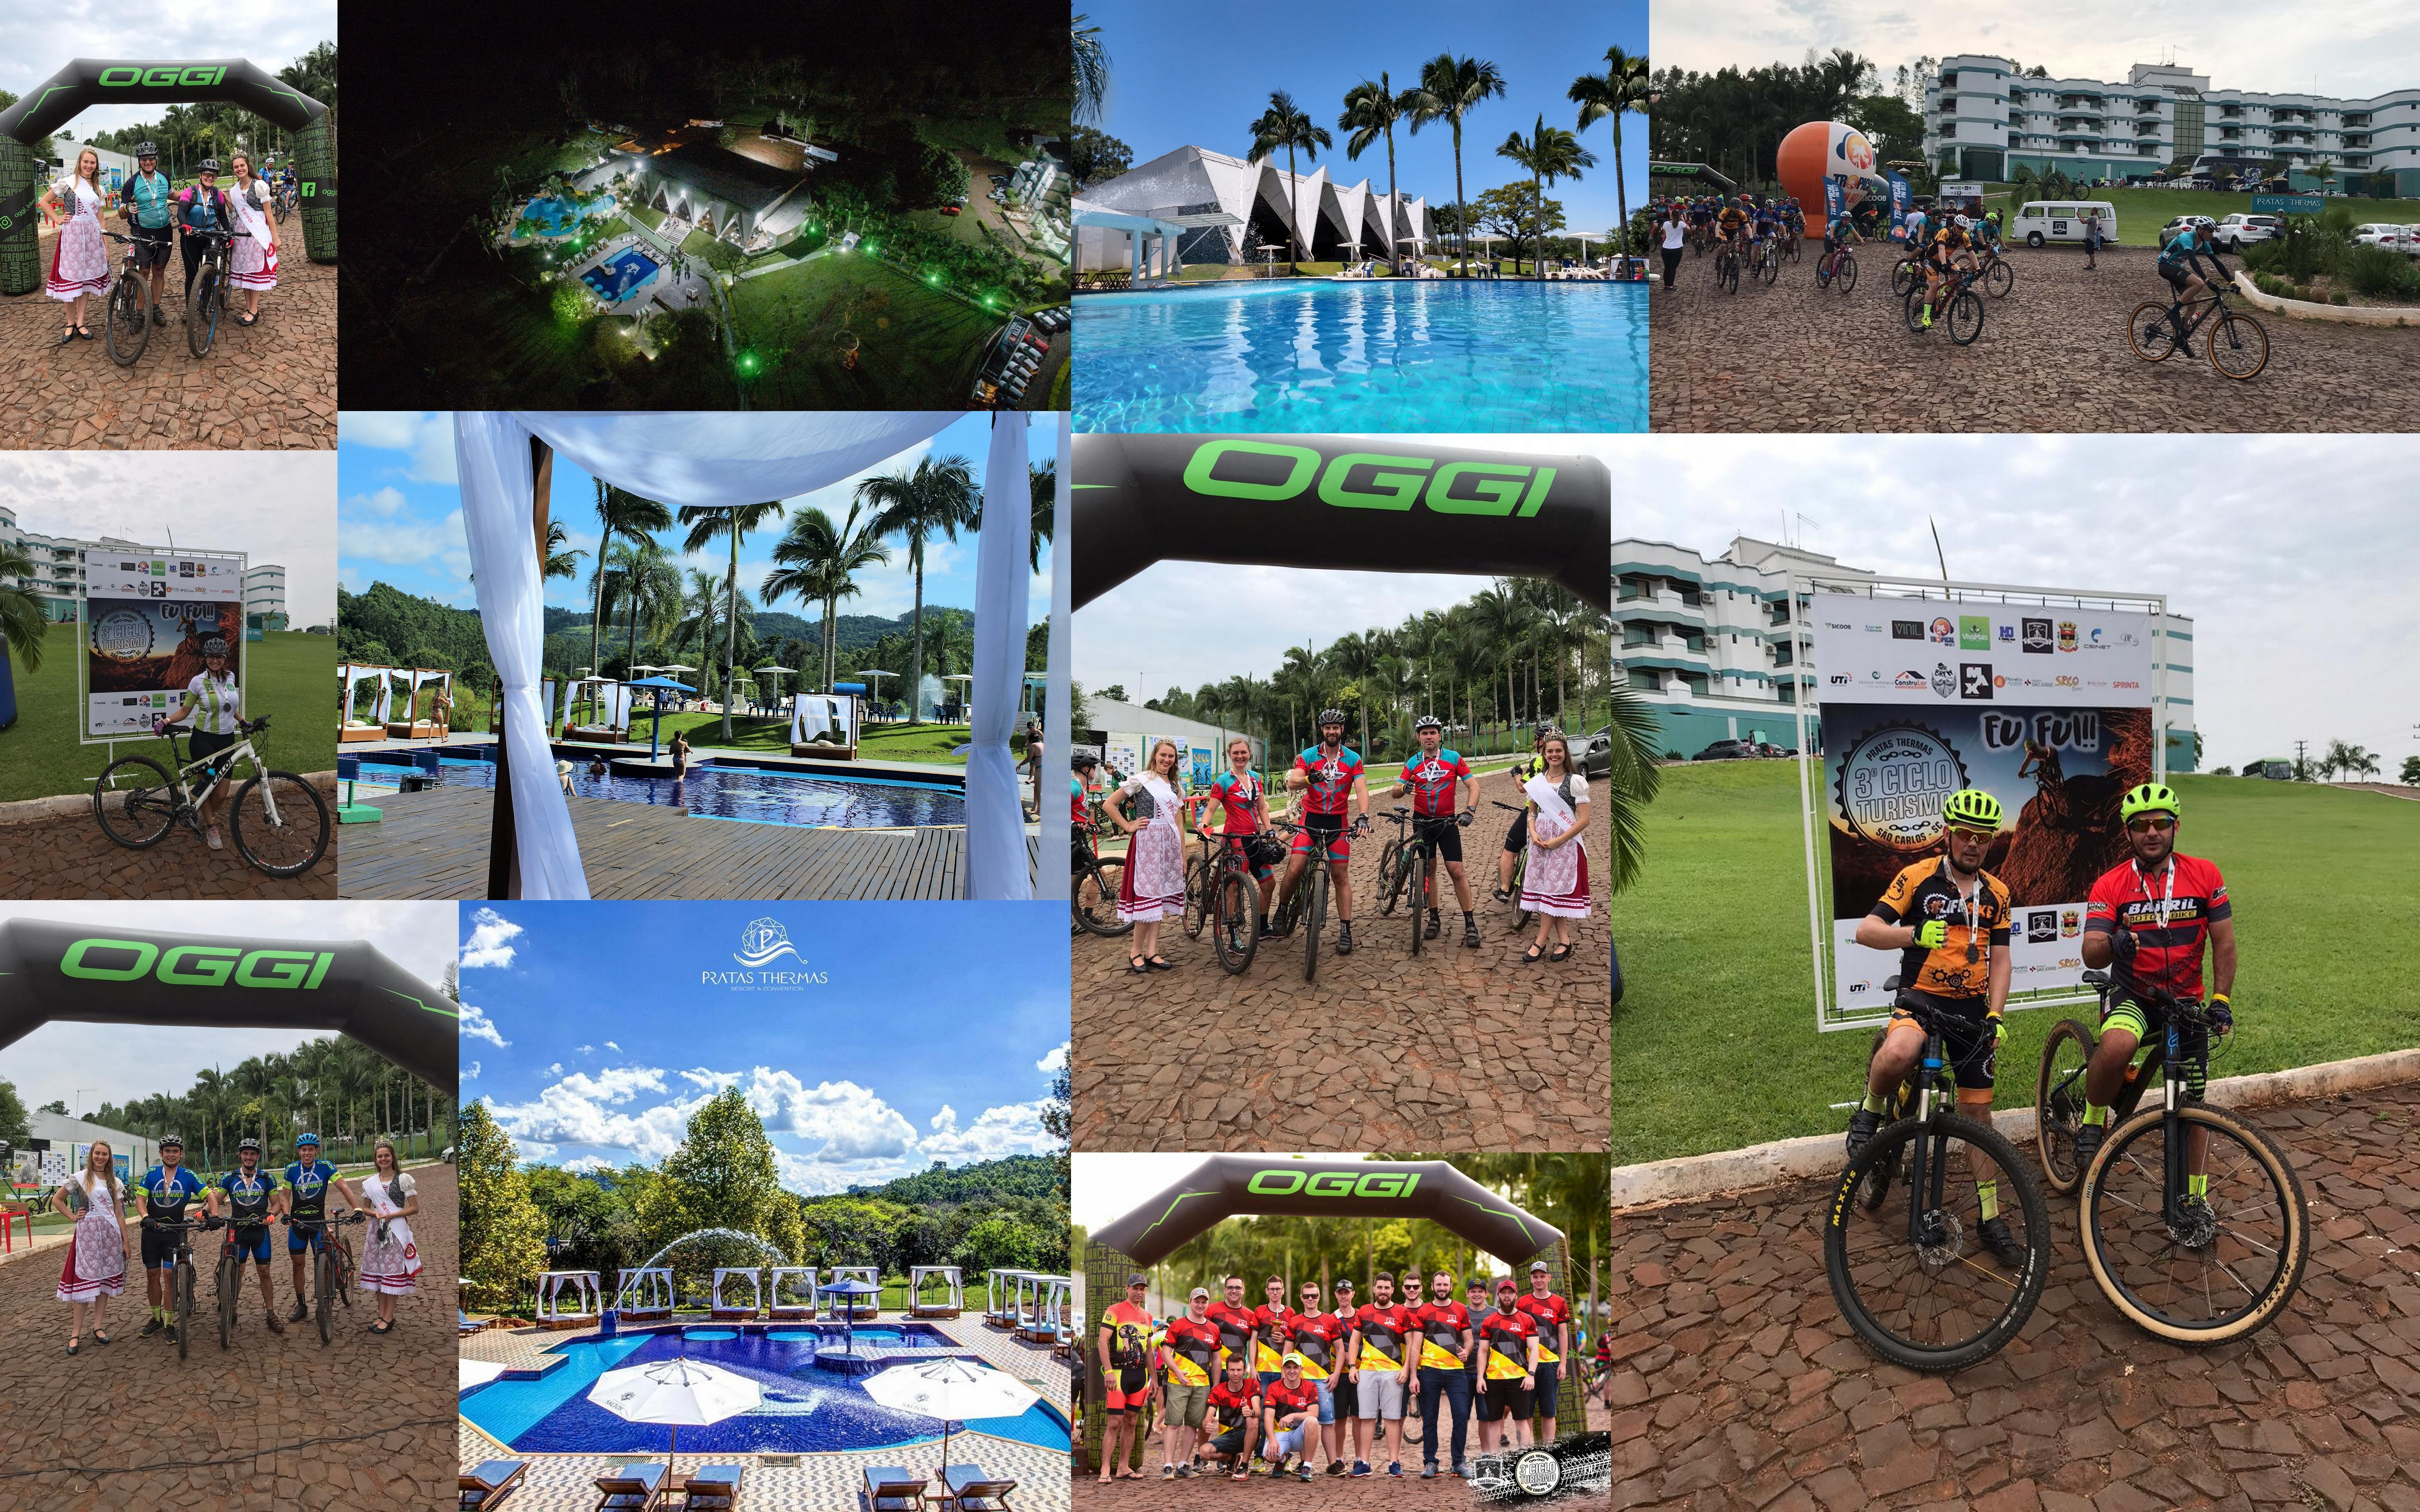 Ciclo Turismo Pratas Thermas Resort & Convention